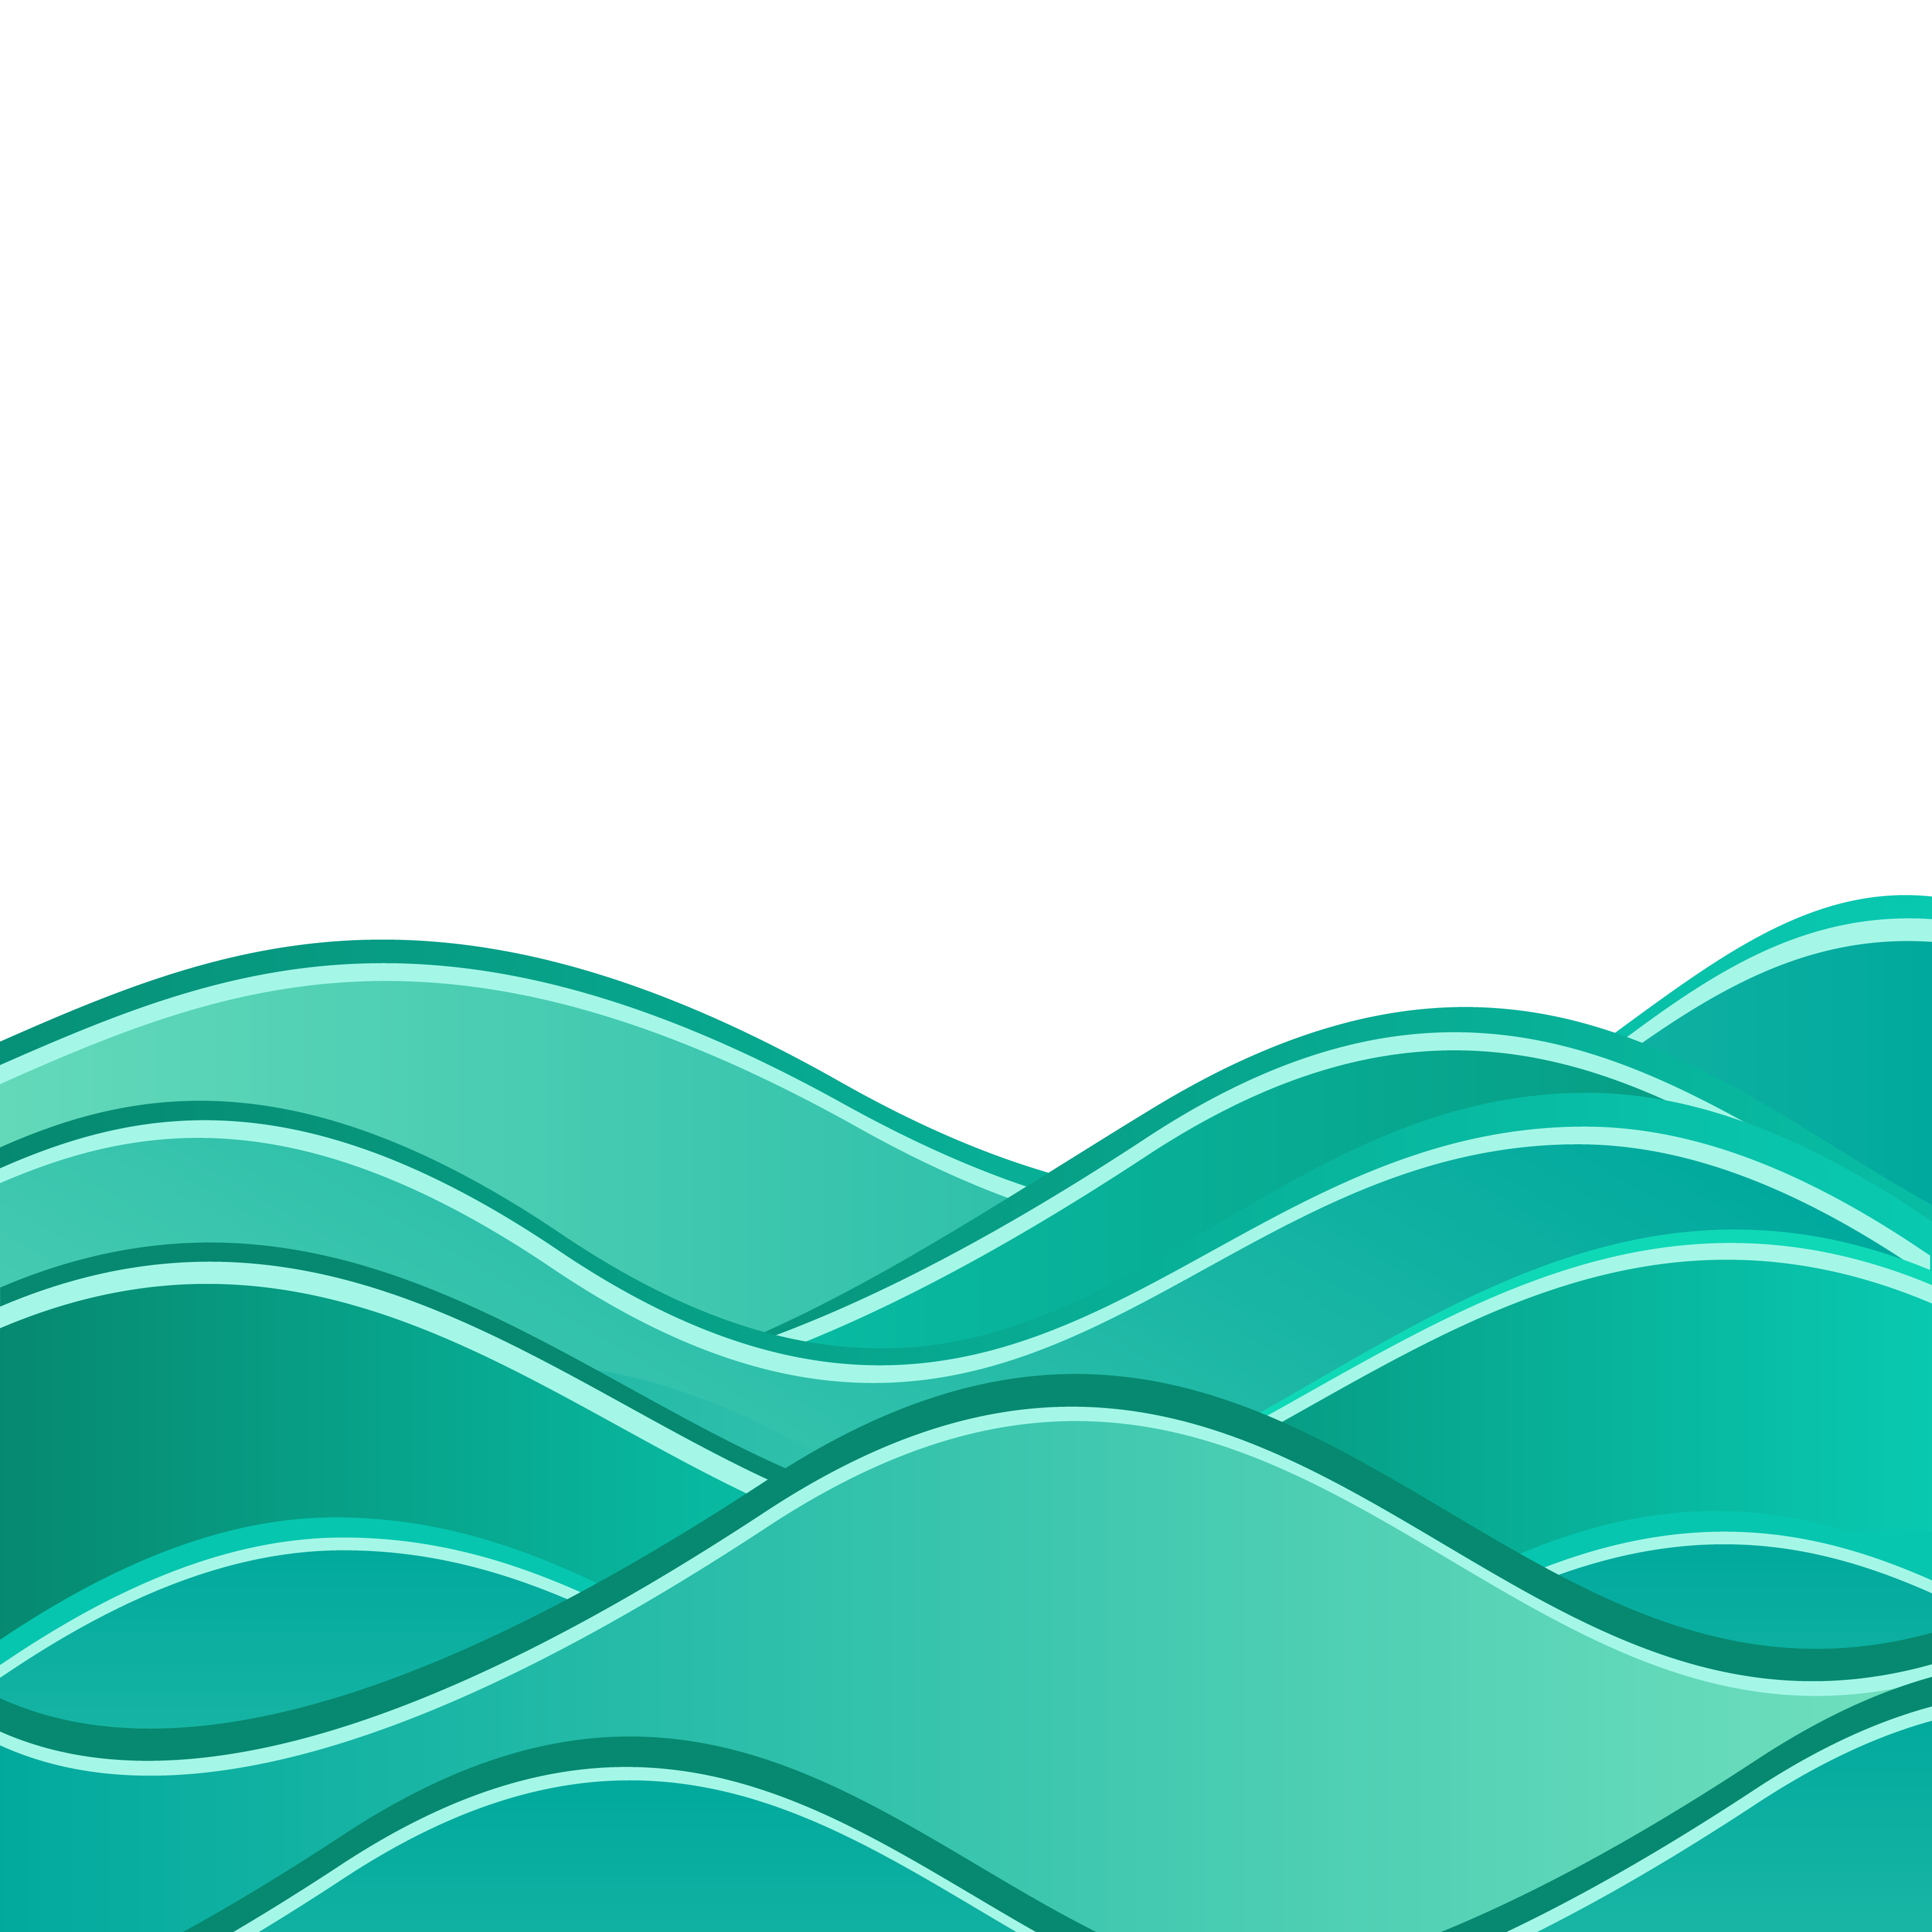 Wave vector png, Wave vector png Transparent FREE for ...